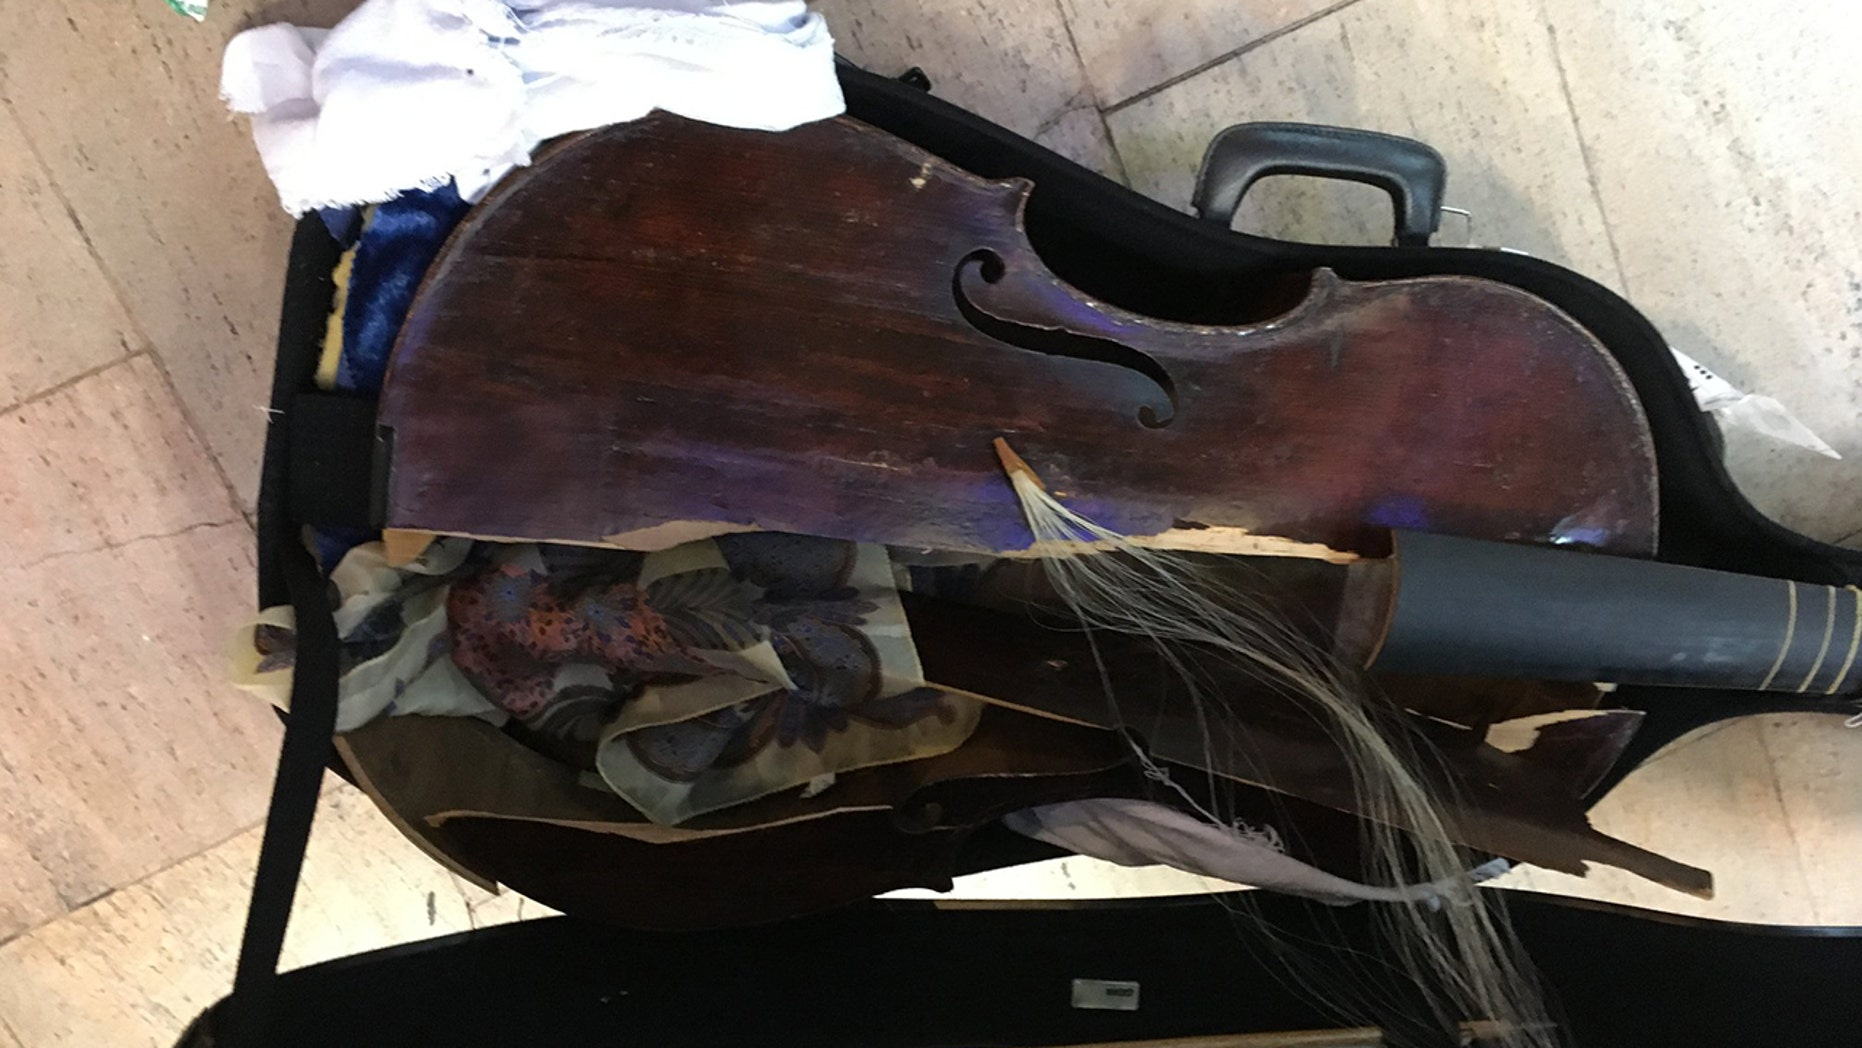 """A musician flying from Brazil to Israel says her $200,000 viola da gamba was severely destroyed because of airline """"greed and disrespect for the musician."""""""